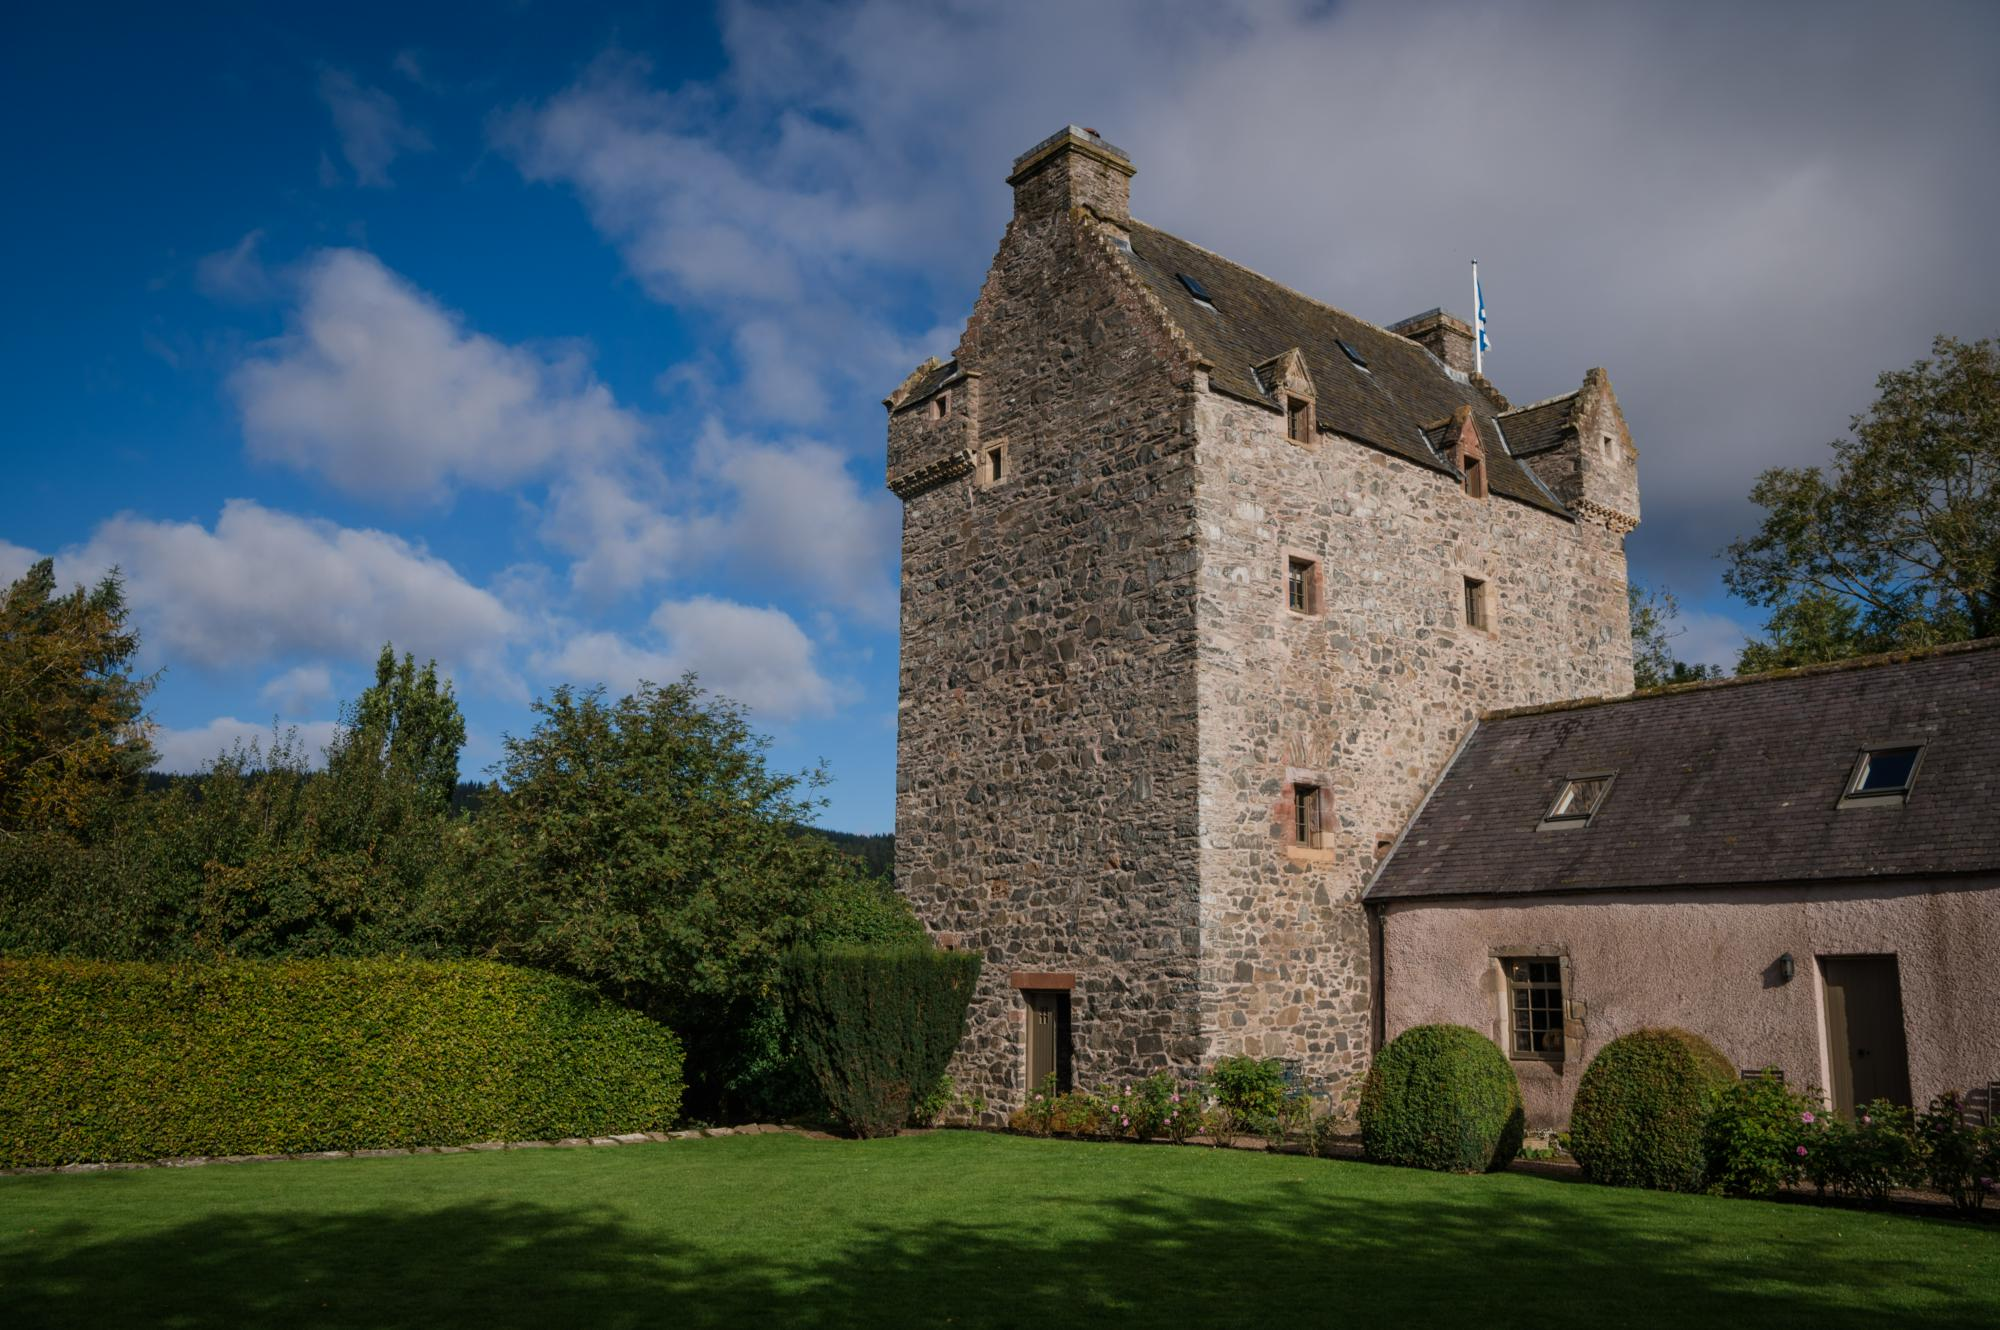 Self-Catering in Scottish Borders holidays at Cool Places